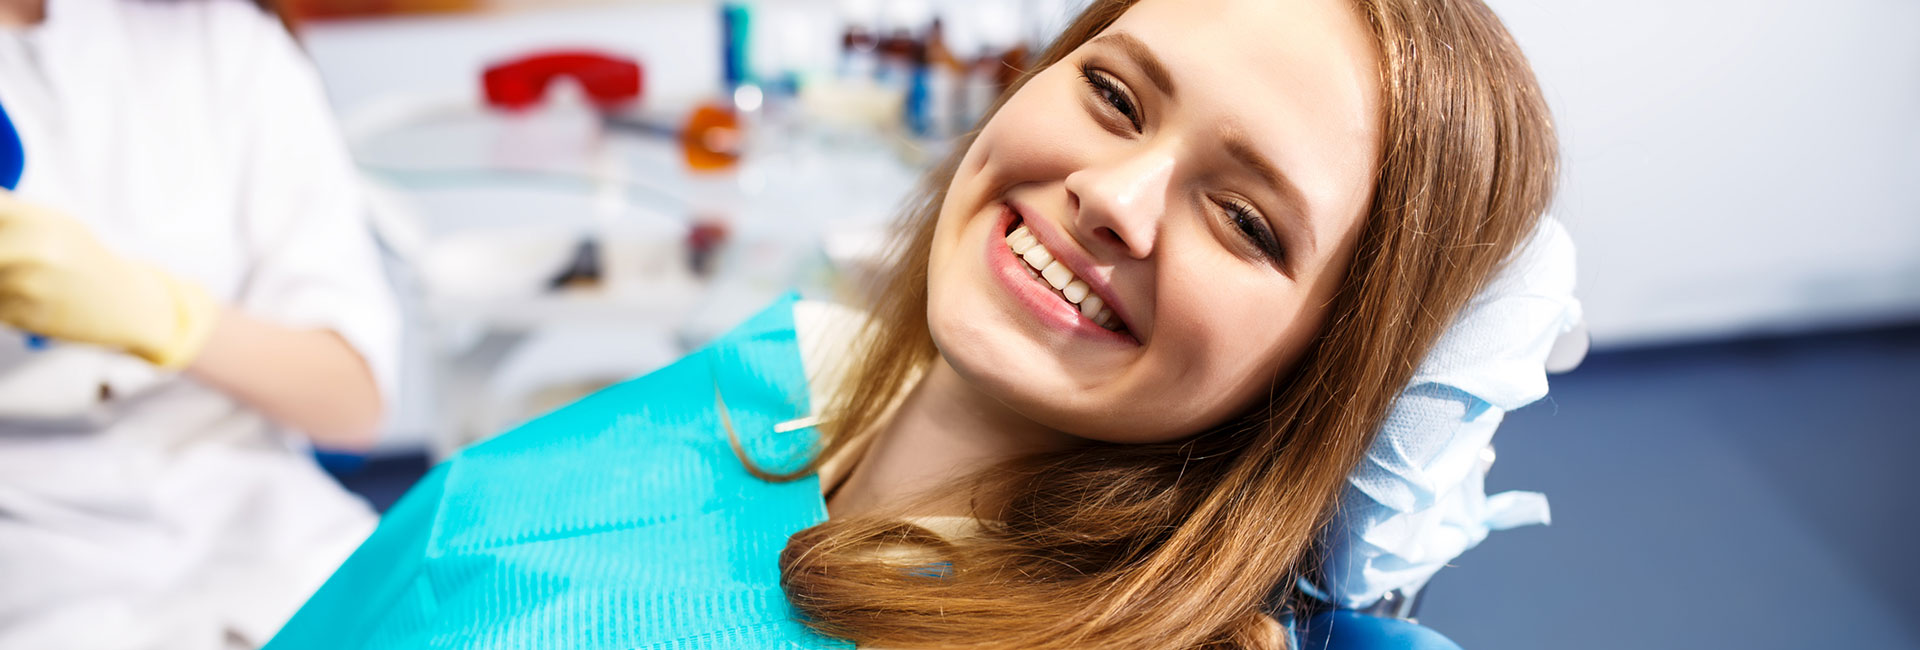 Smiling woman in a dental chair